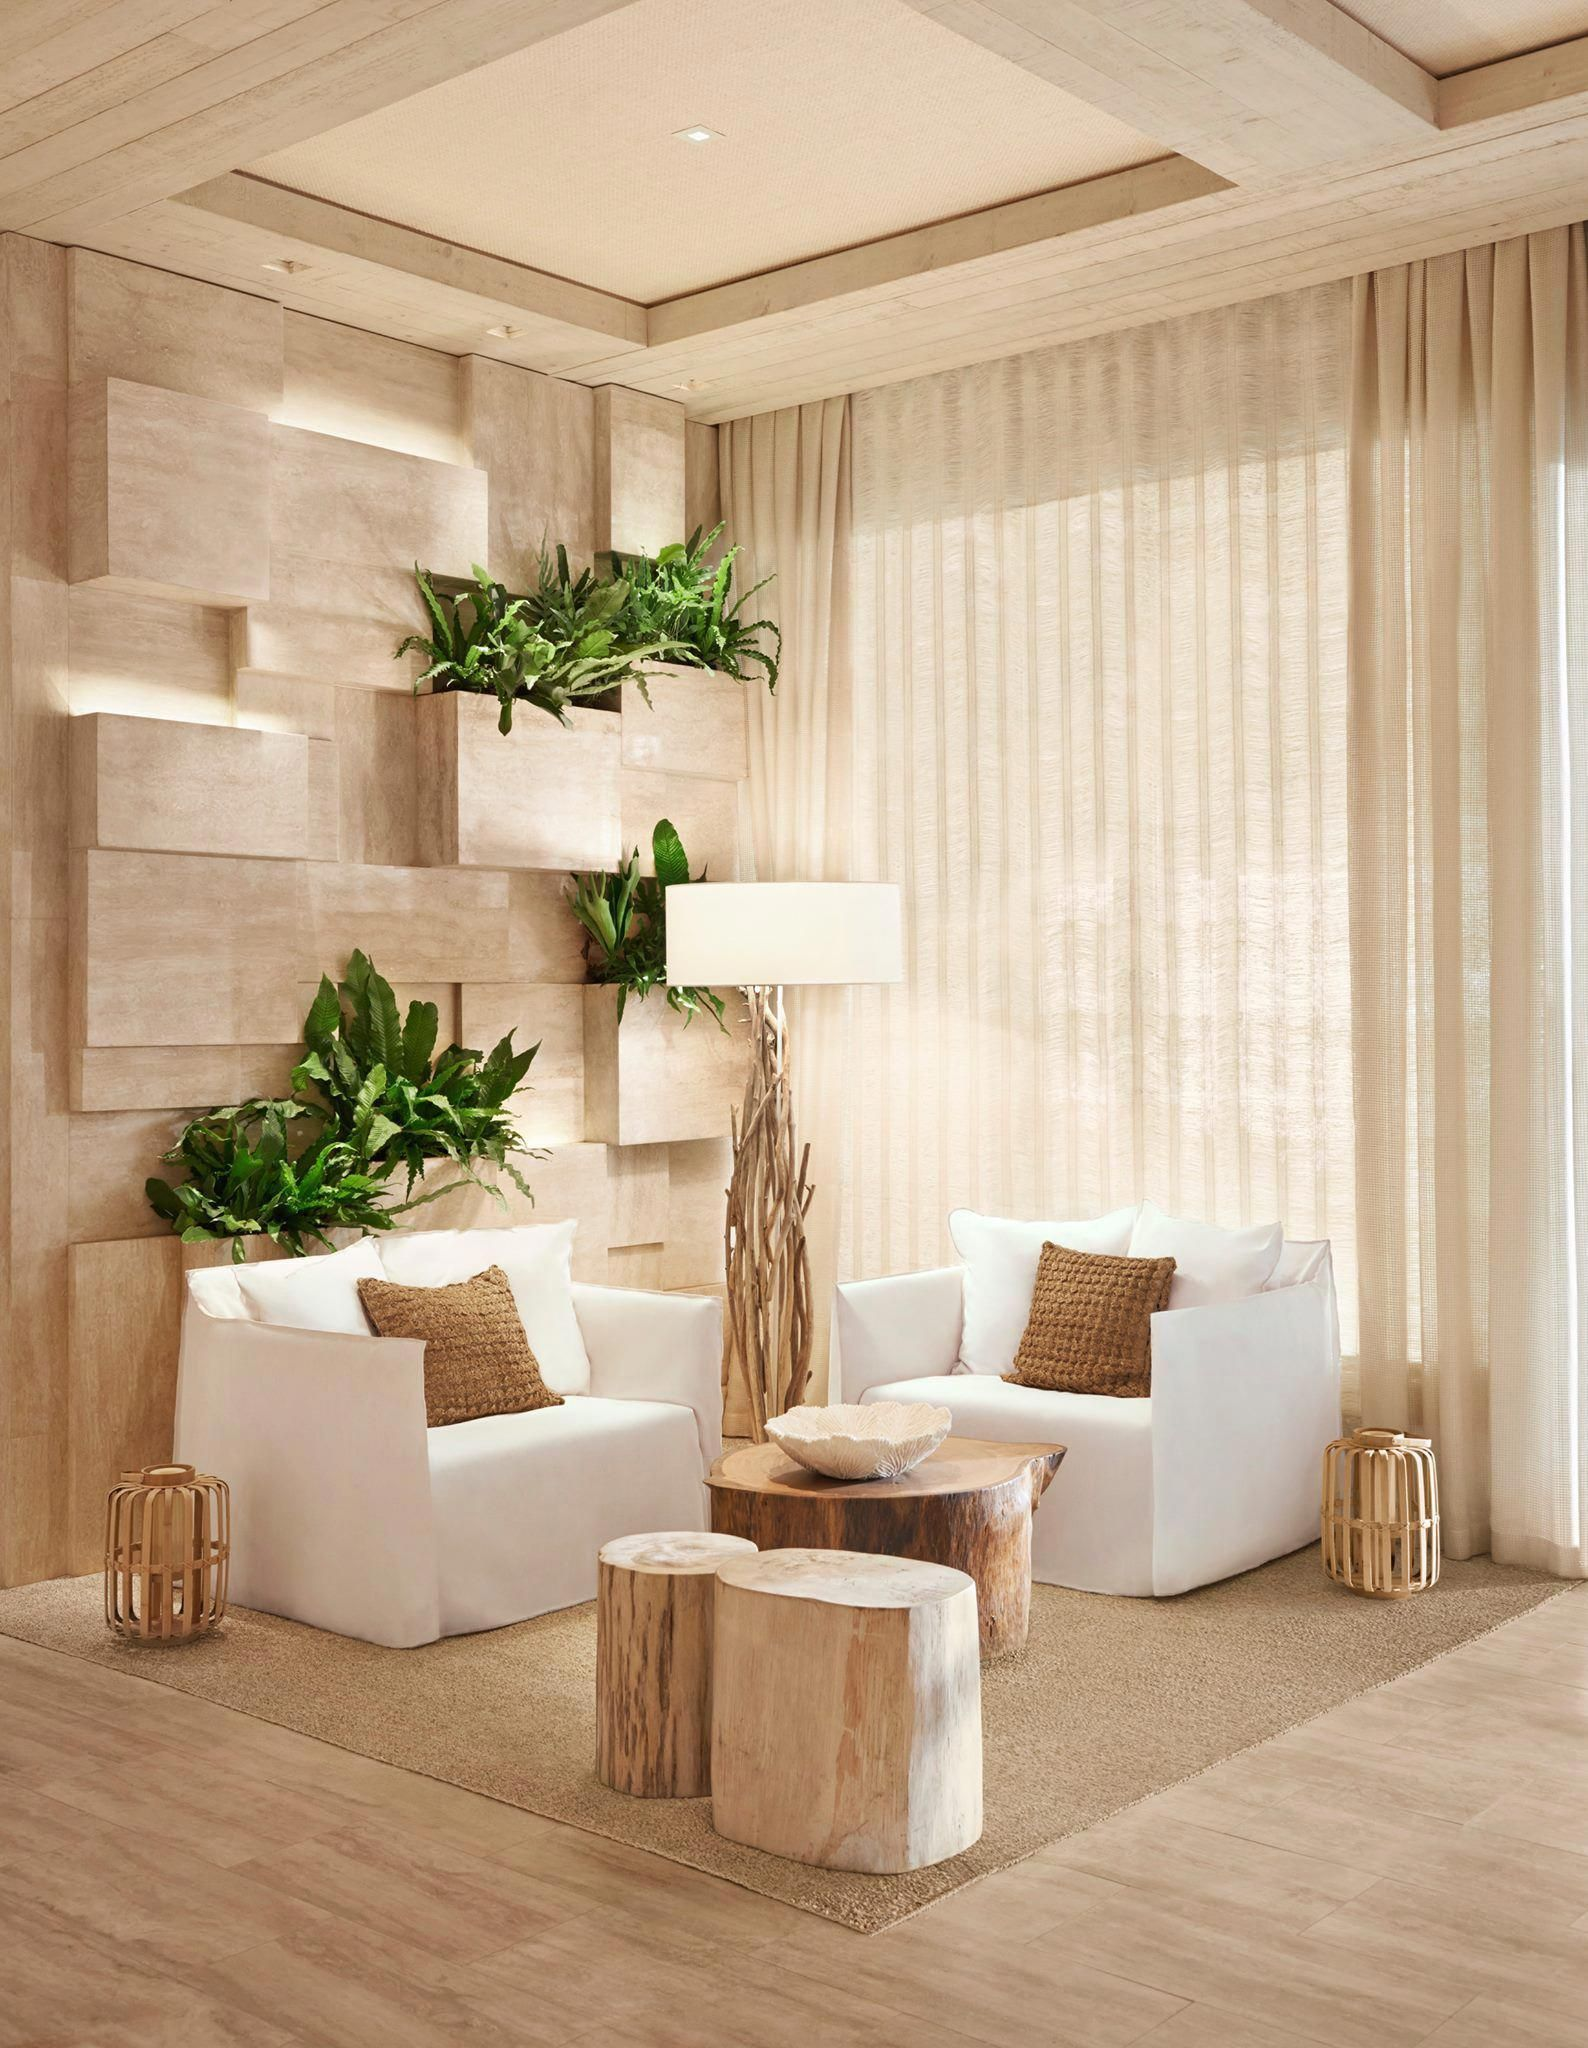 HOME DECOR FRESH STYLING THAT WILL PROVIDE MORE SATISFACTION